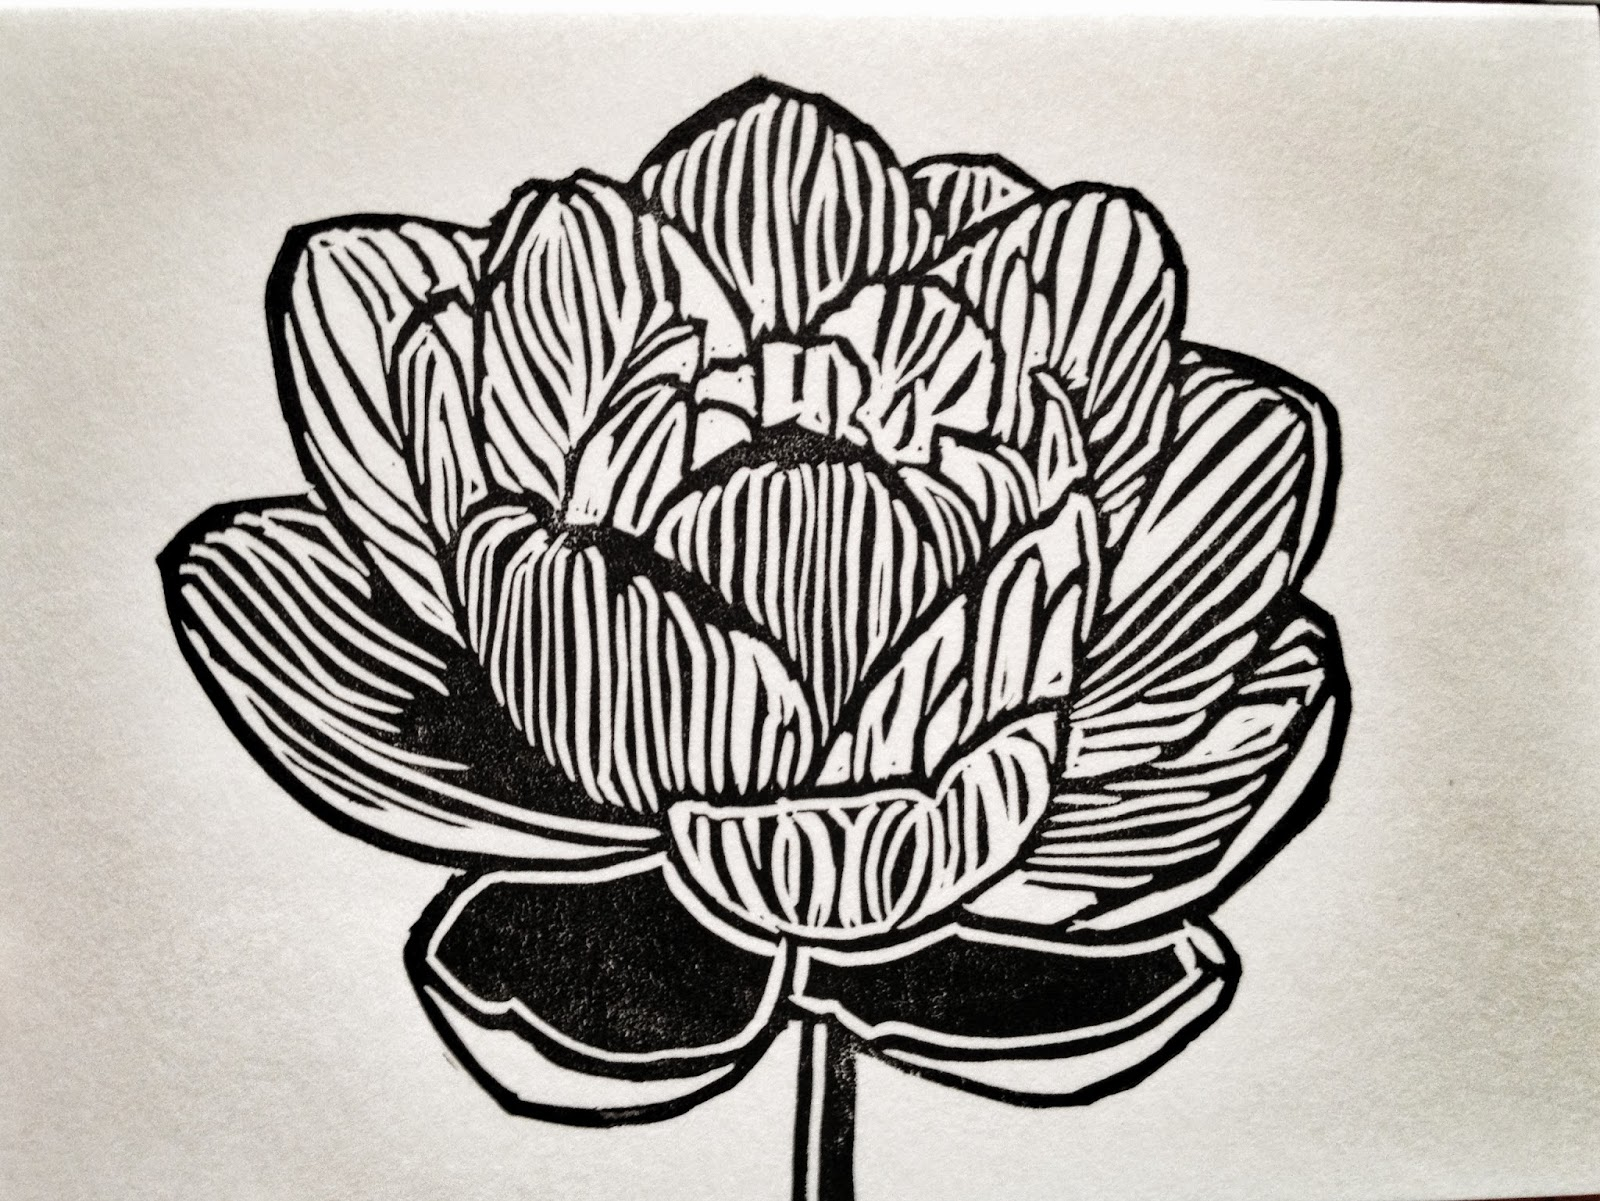 LOTUS Blossom Cards - 3 Hand Printed Linocuts on Premium Heavy Weight Paper (With Envelopes)https://www.etsy.com/listing/160926428/lotus-blossom-cards-3-hand-printed?ref=related-1